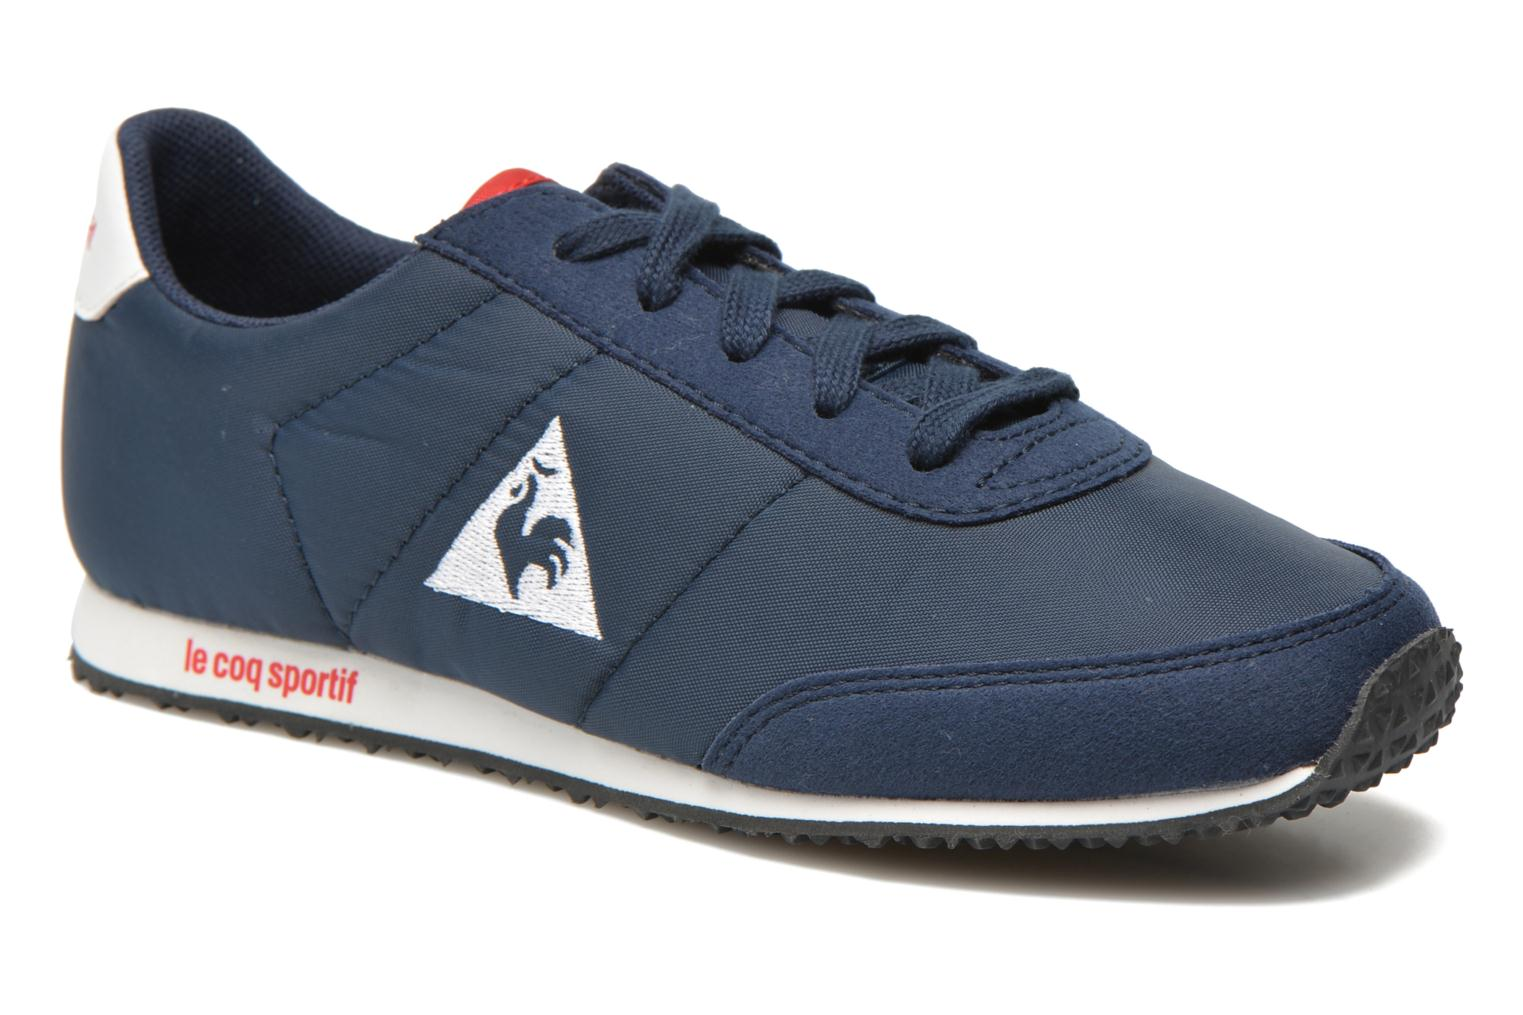 Nylon Dress Blue Le Coq Sportif Racerone GS Boy (Bleu)